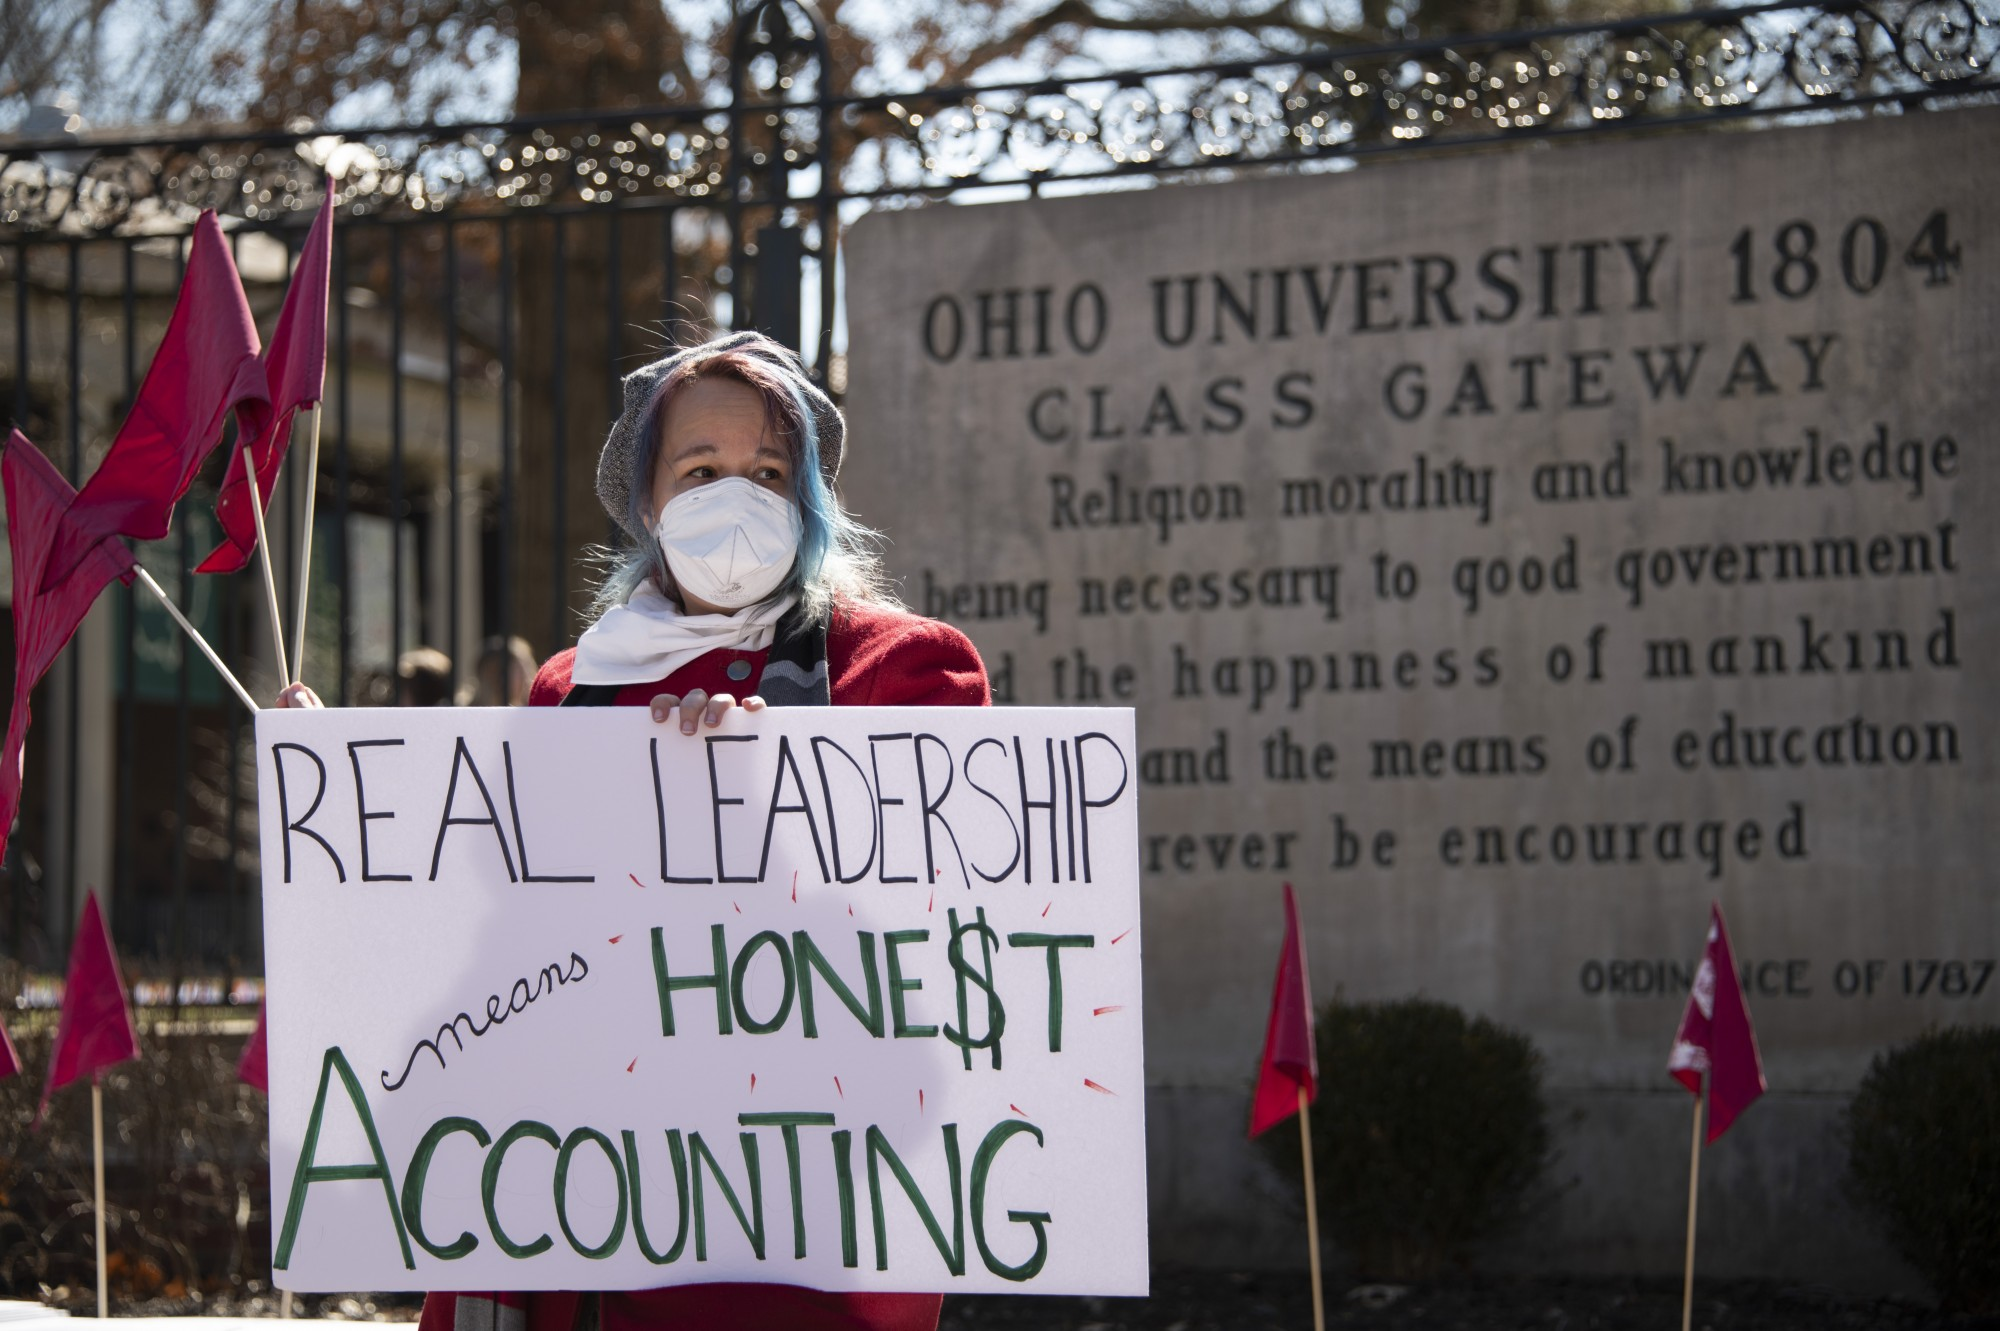 Ohio University faculty and Athens community members gathered outside of the class gateway, on college green, in support of the faculty that was laid off last spring on Wednesday March 3, 2021 in Athens, Ohio.